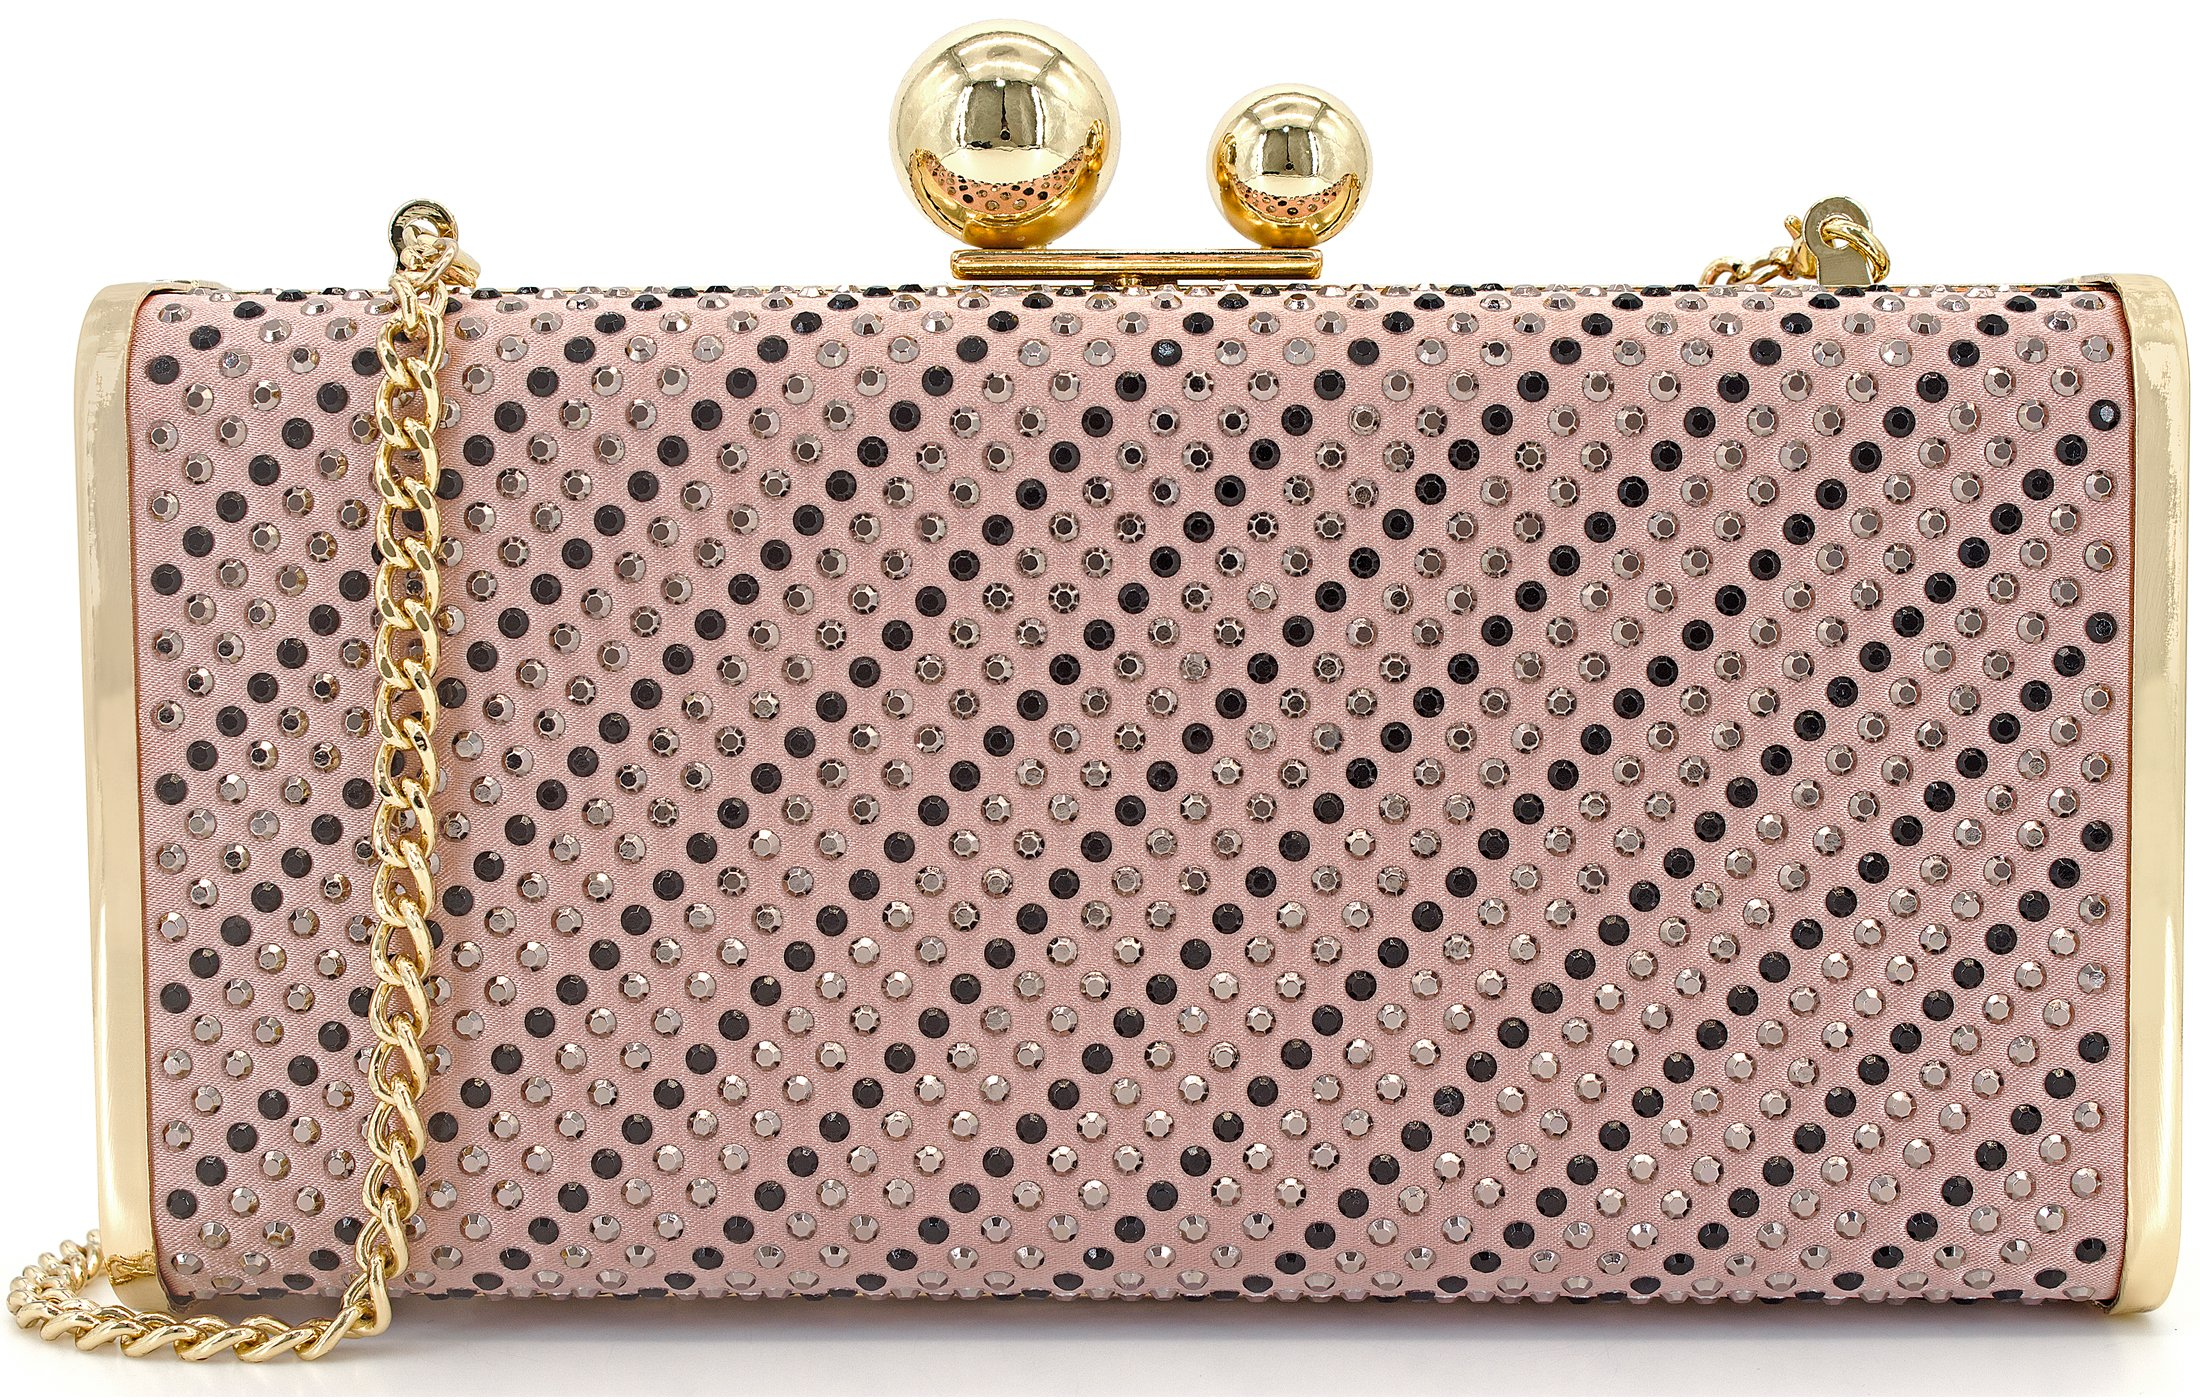 Womens Evening Clutch Purse with 2 Balls Clasp Large Hardcase Rhinestuds Clutch Bag Pink